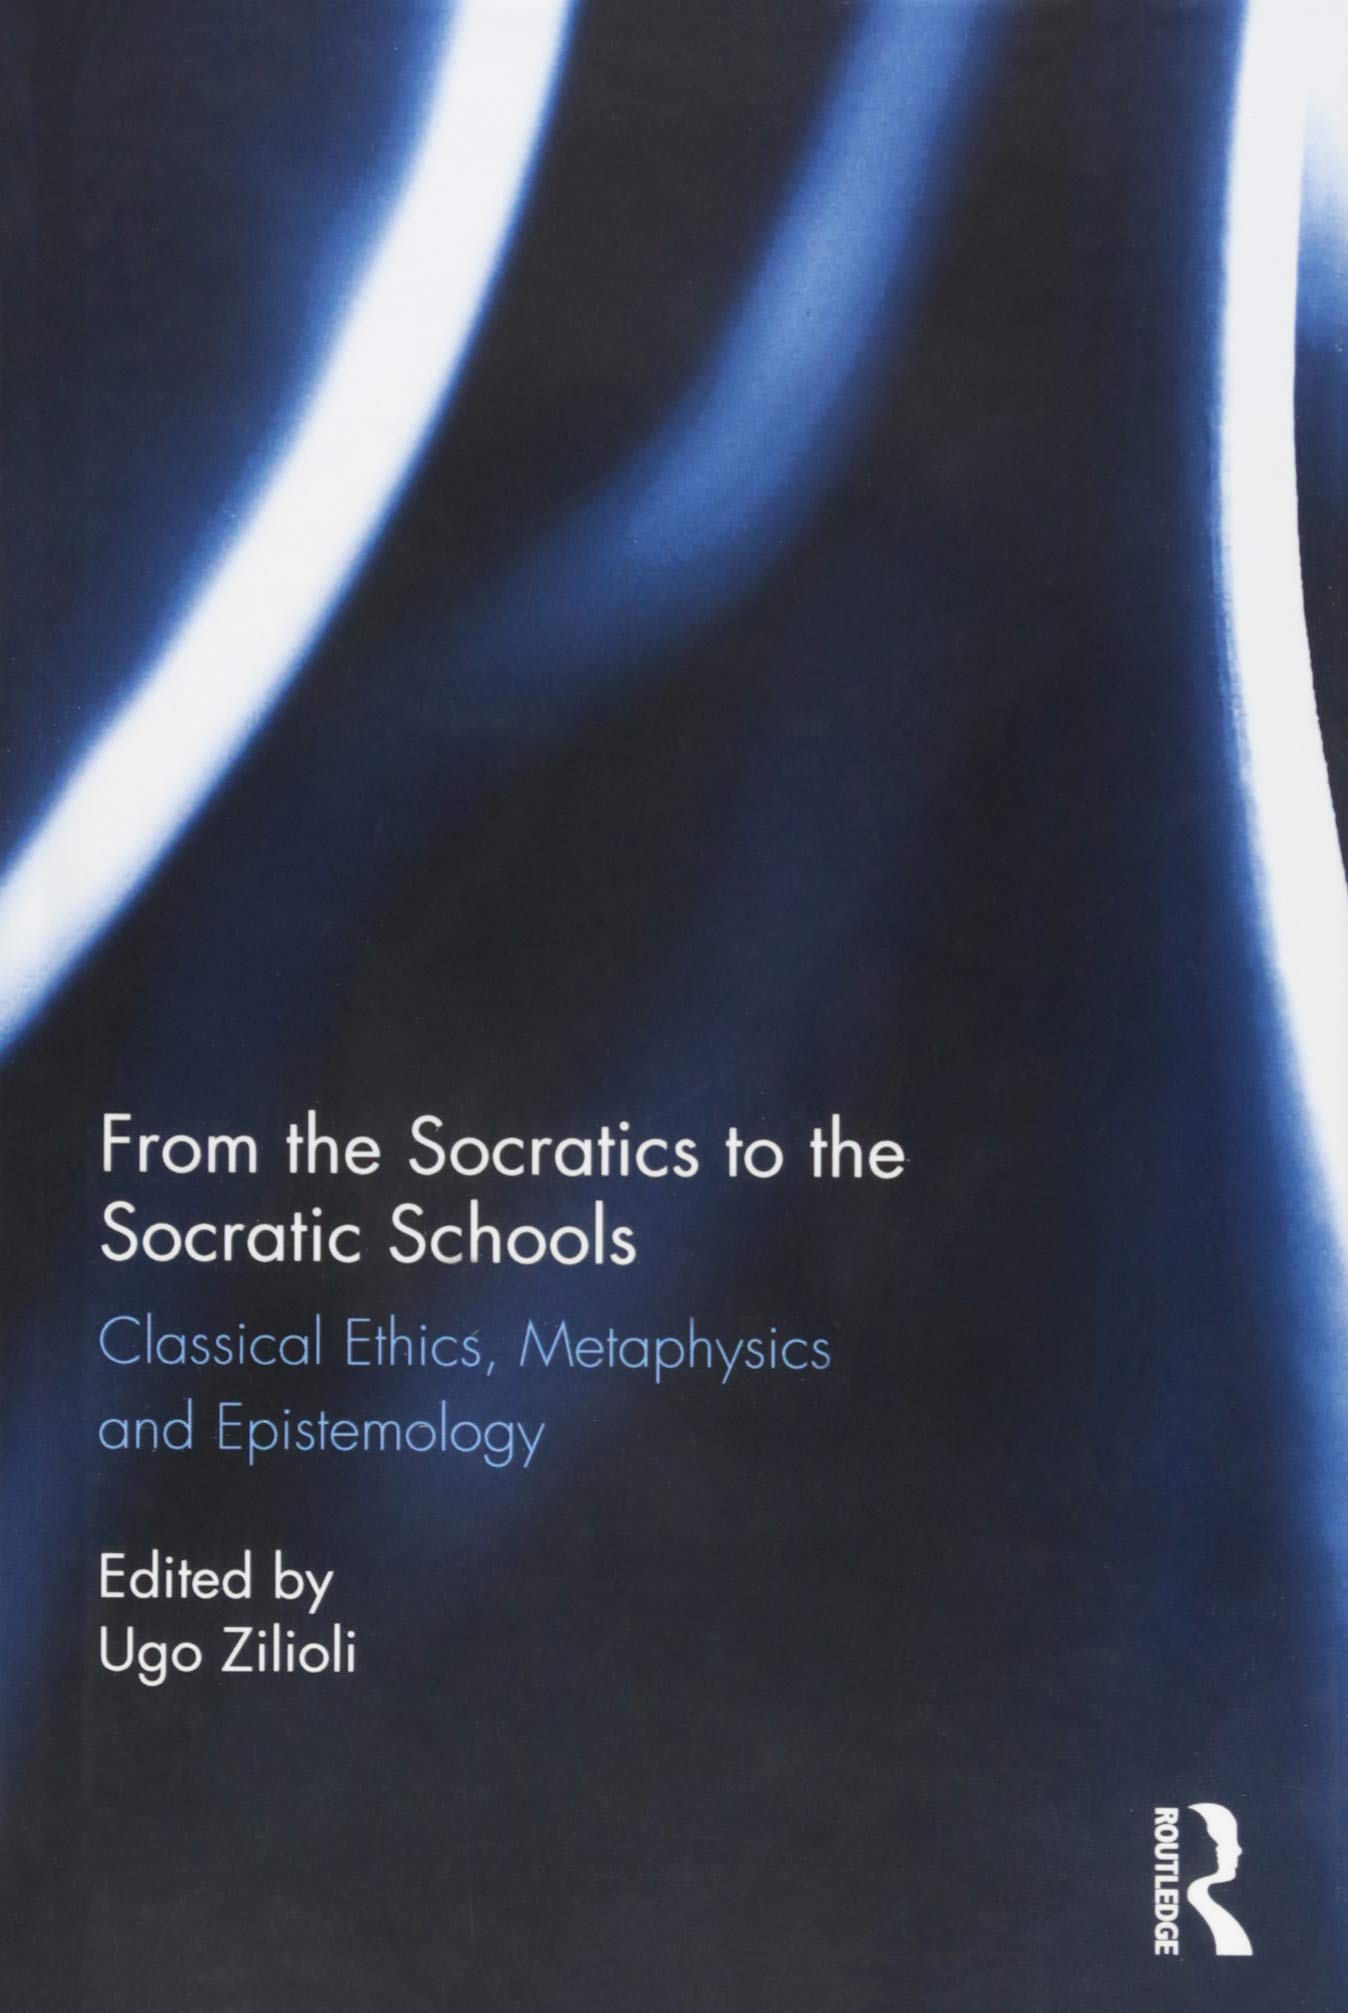 From the Socratics to the Socratic Schools: Classical Ethics, Metaphysics and Epistemology